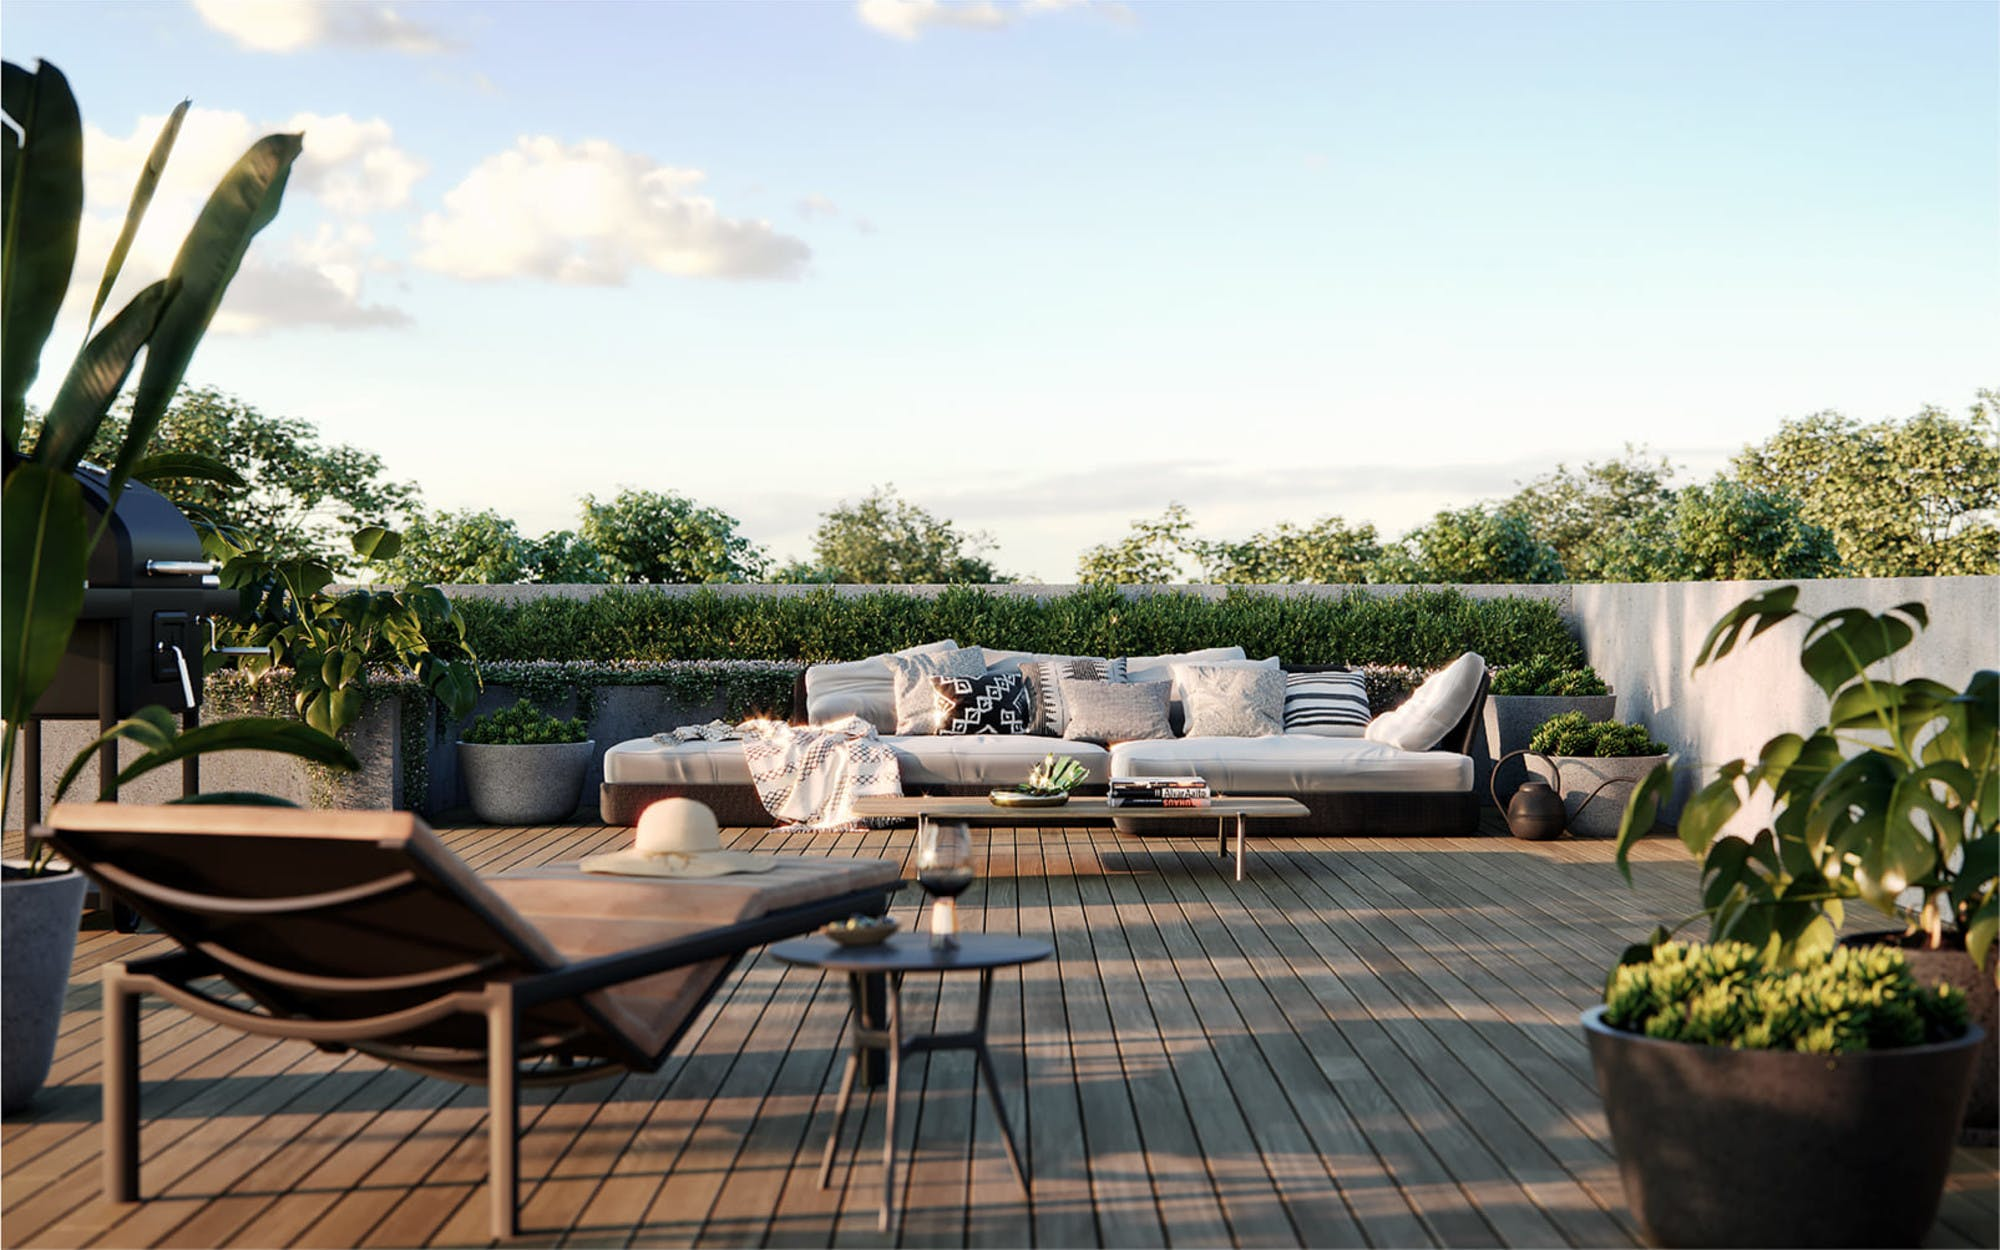 Rooftop | YarraBend: Off the Plan Townhouses, Apartments & Property Melbourne